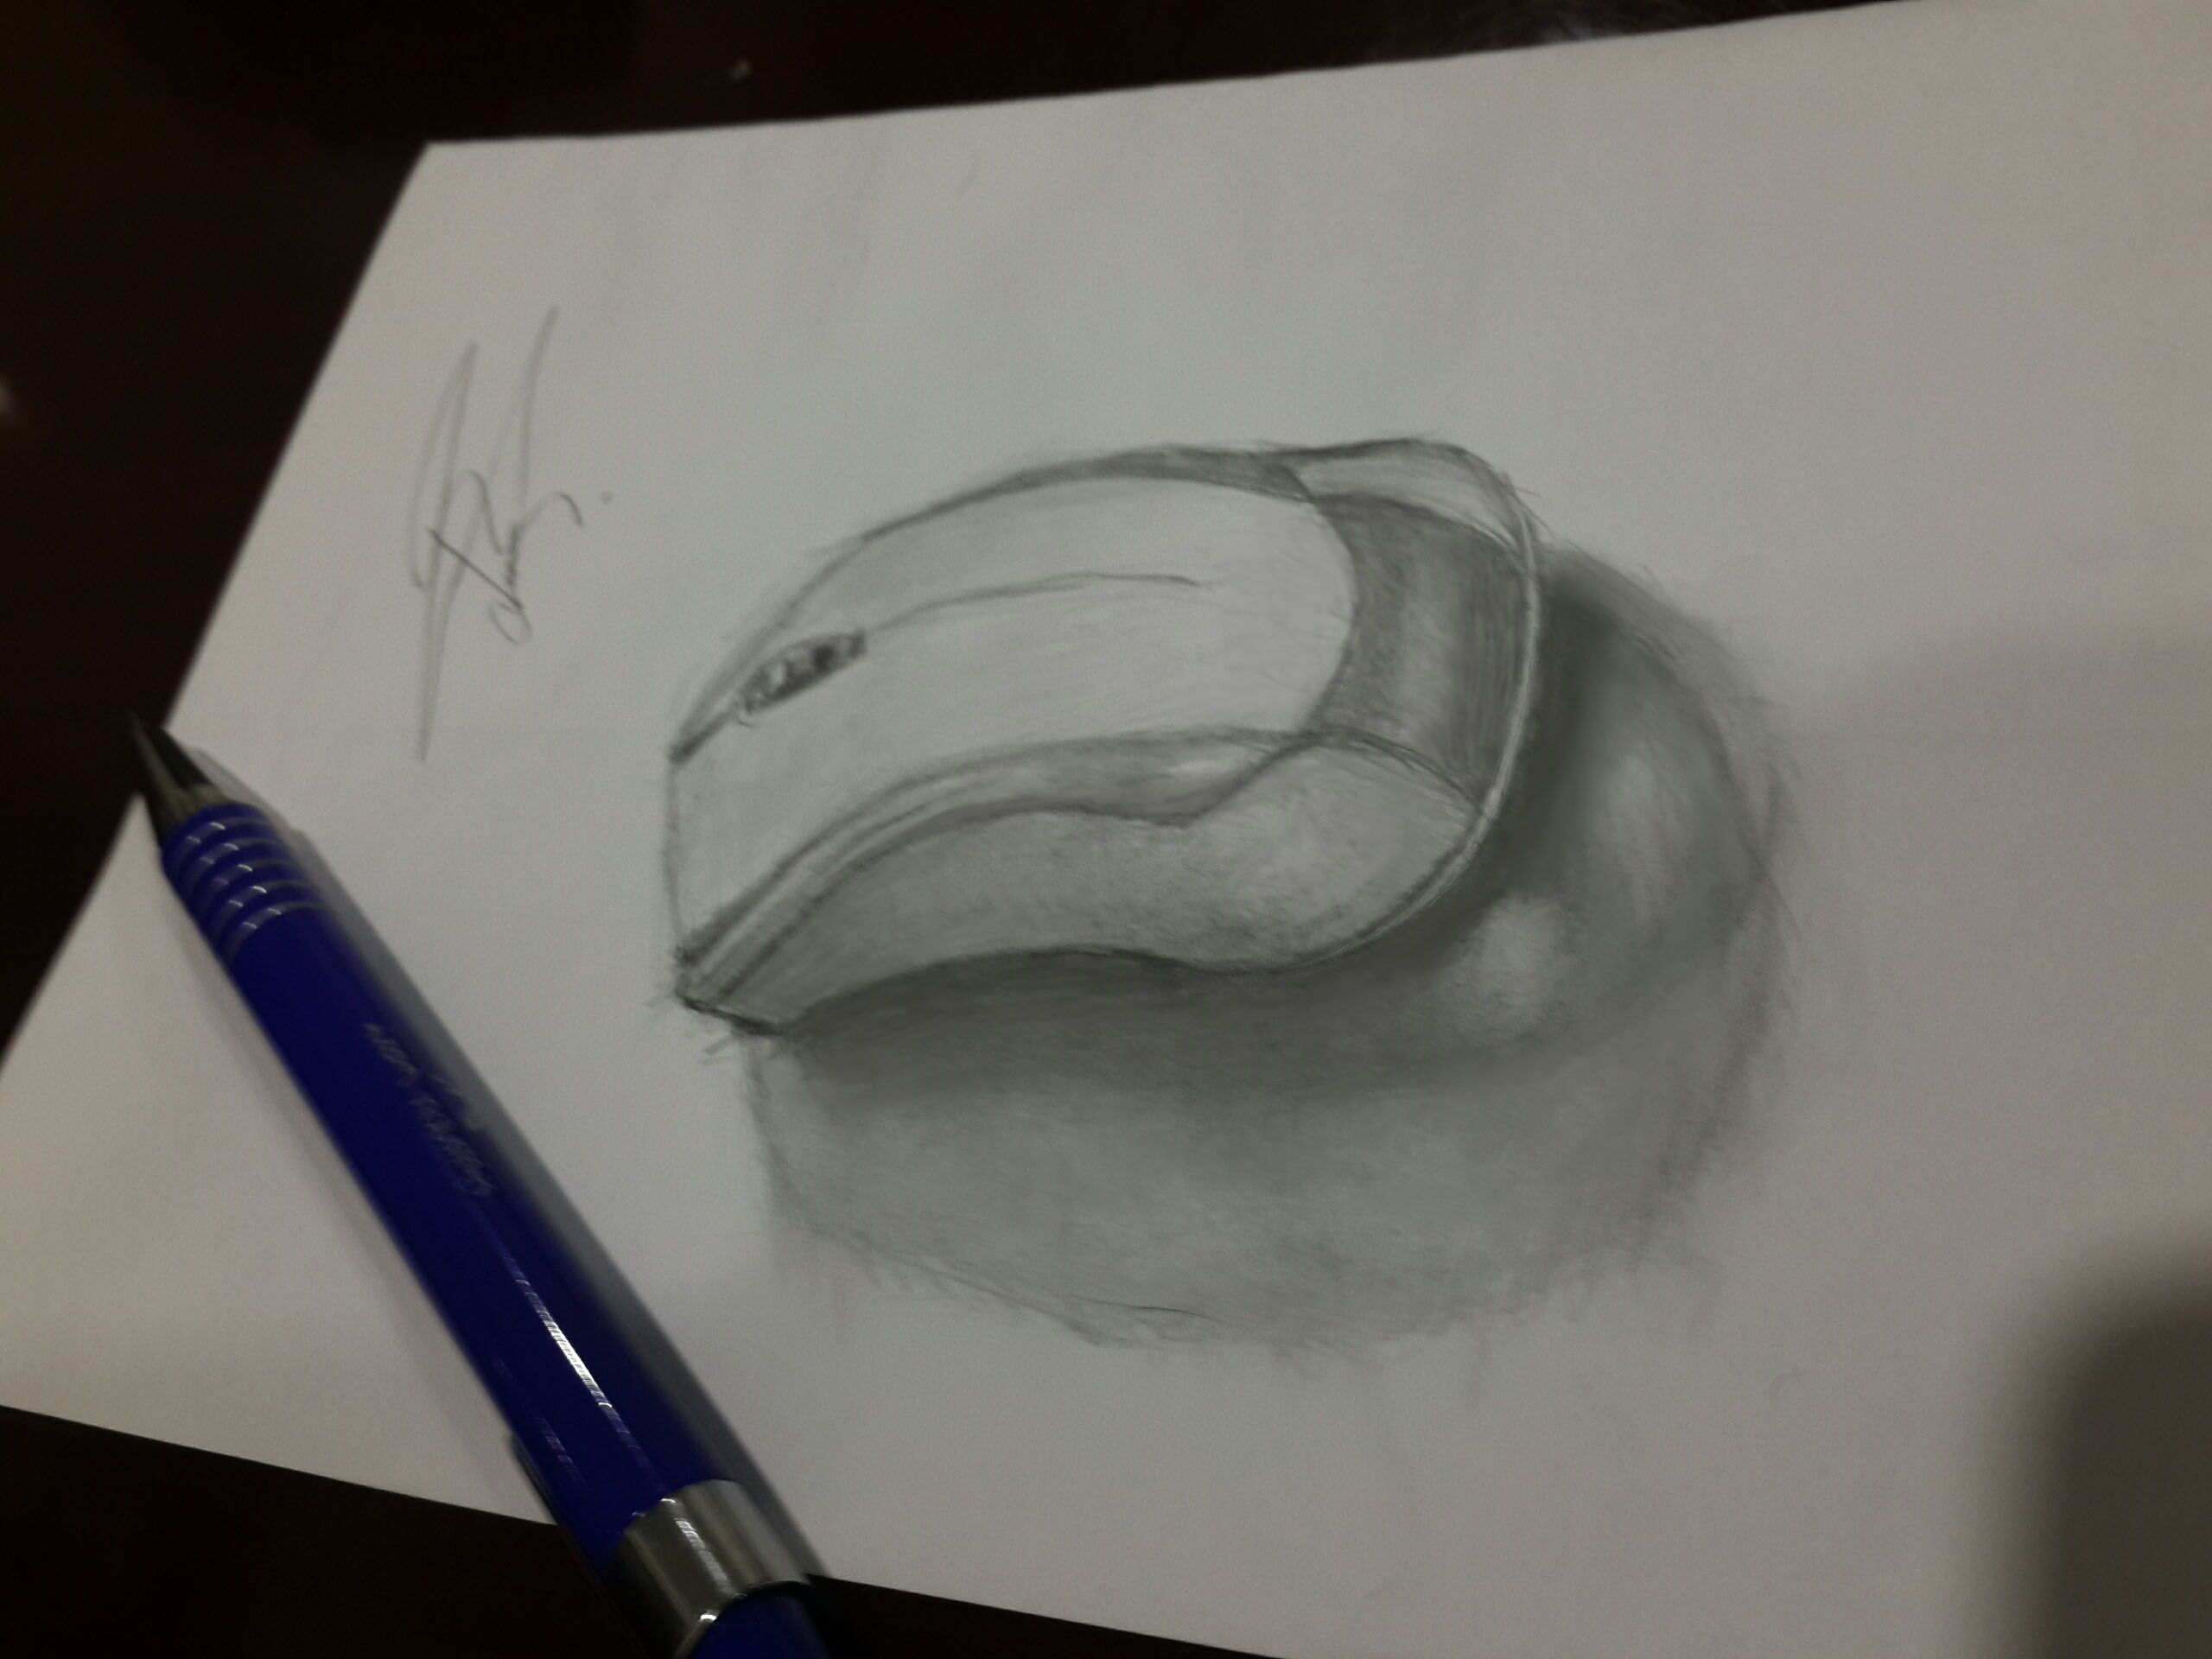 Mechanical pencil drawing computer mouse mouse drawing pencil